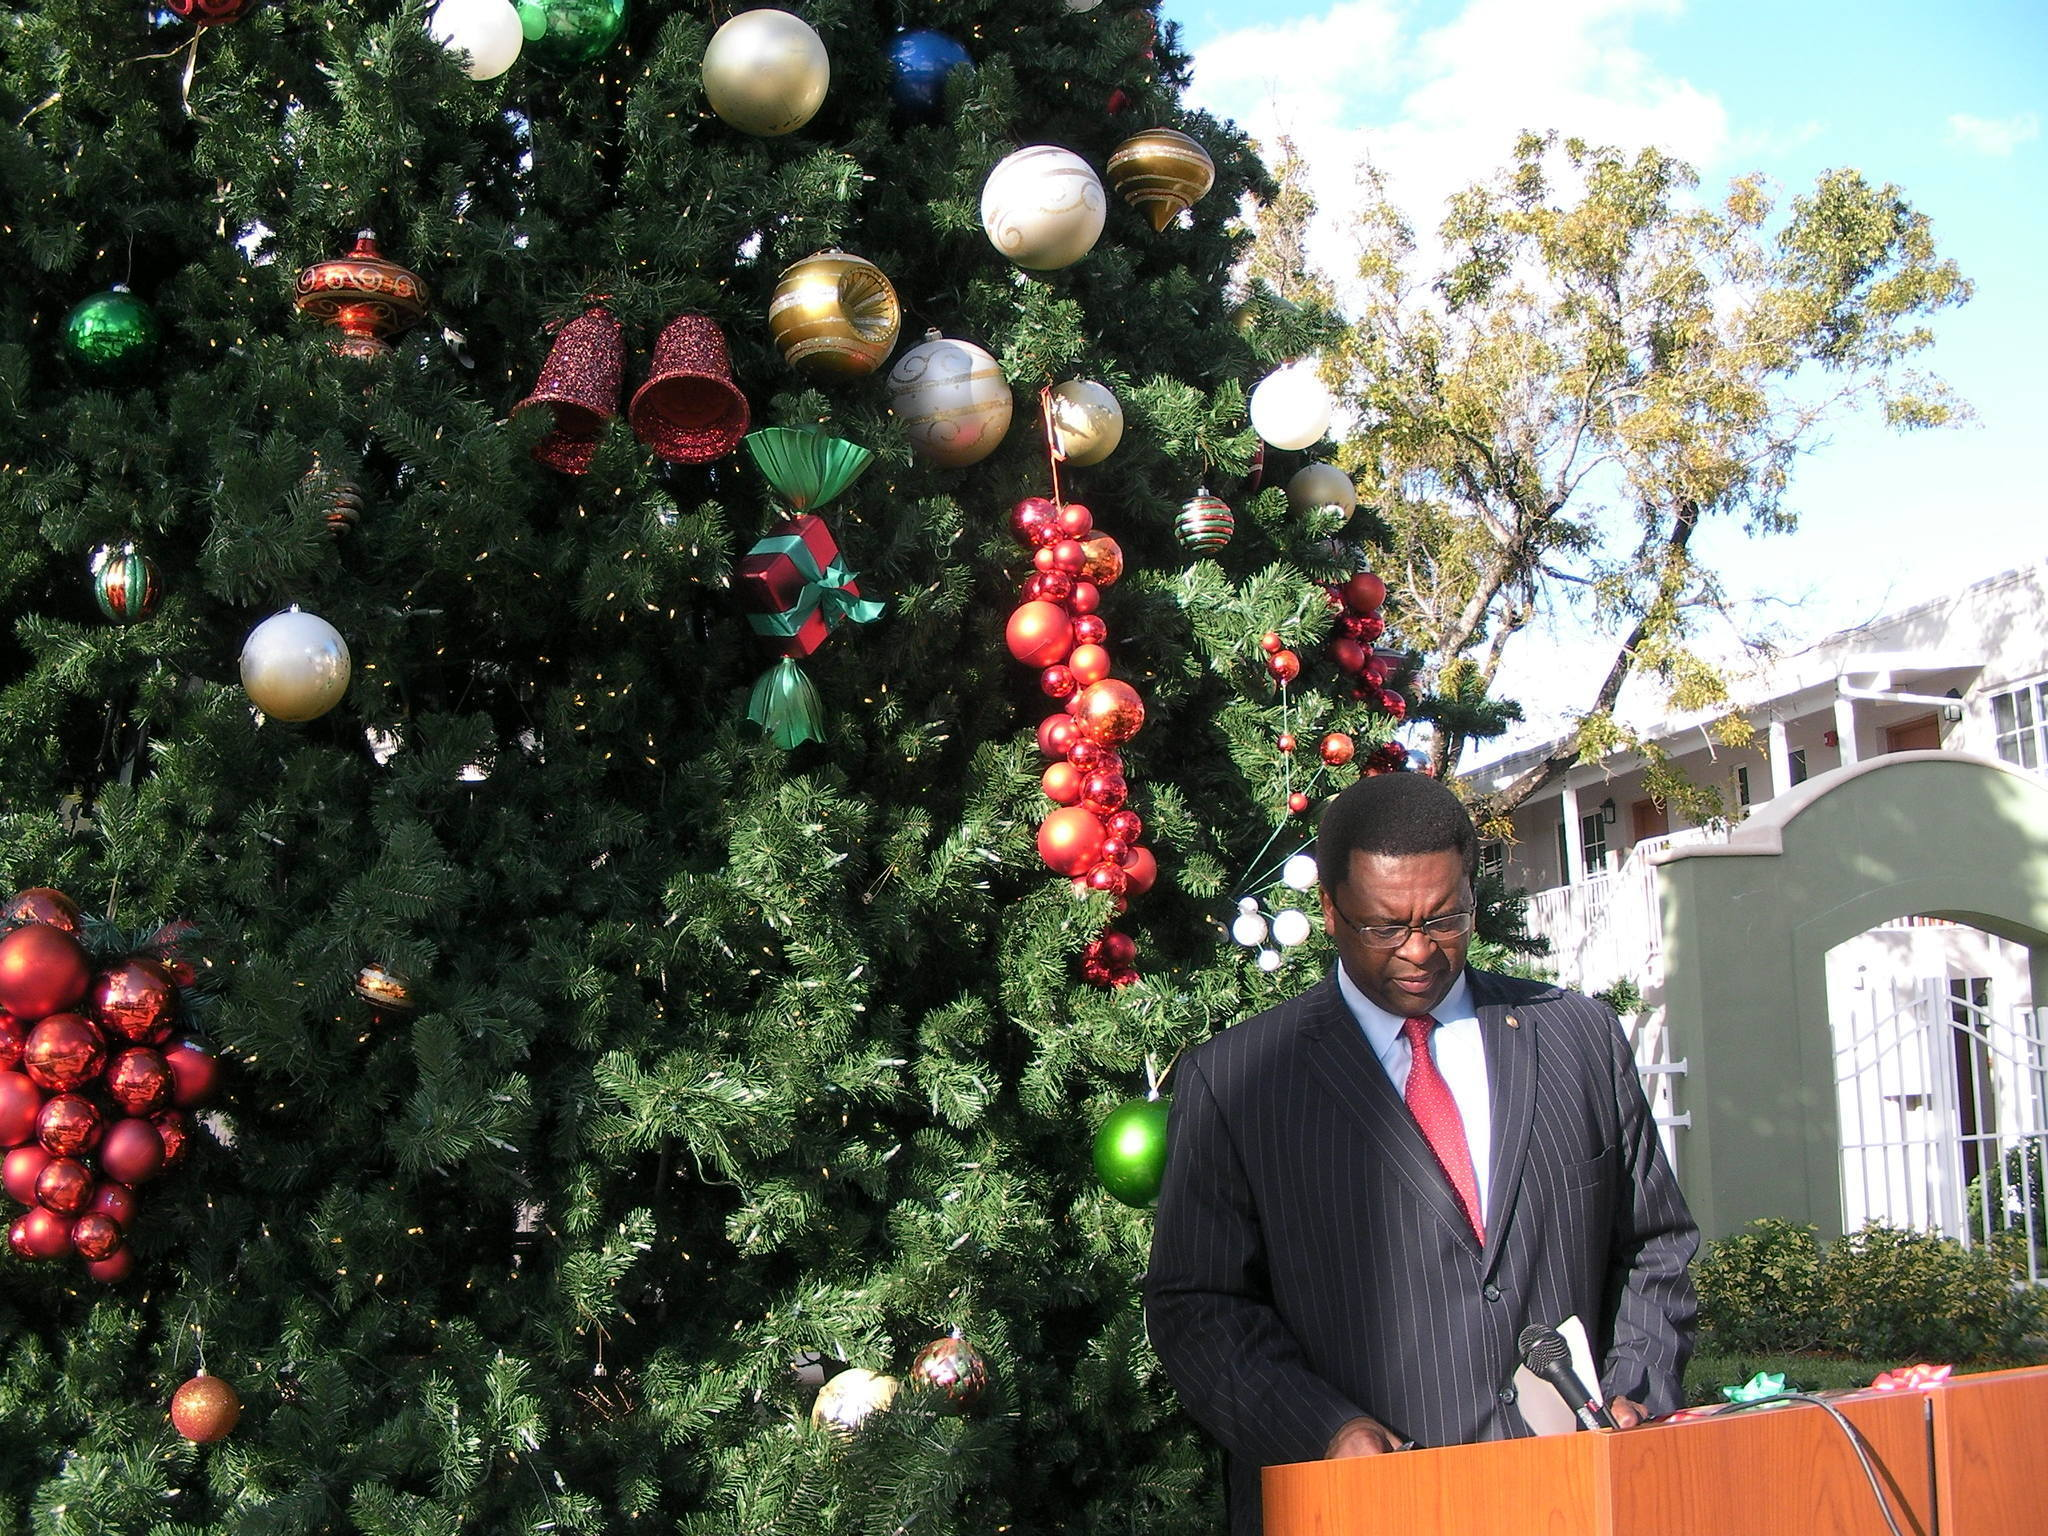 State Rep. Perry Thurston, a Broward Democrat and his party's leader in the Florida House, prepares for a press conference on Thursday, Dec. 19, 2013, in front of the Christmas tree at Alan Clubhouse Plaza on Sistrunk Boulevard in Fort Lauderdale. (Photo by Anthony Man/Sun Sentinel.)